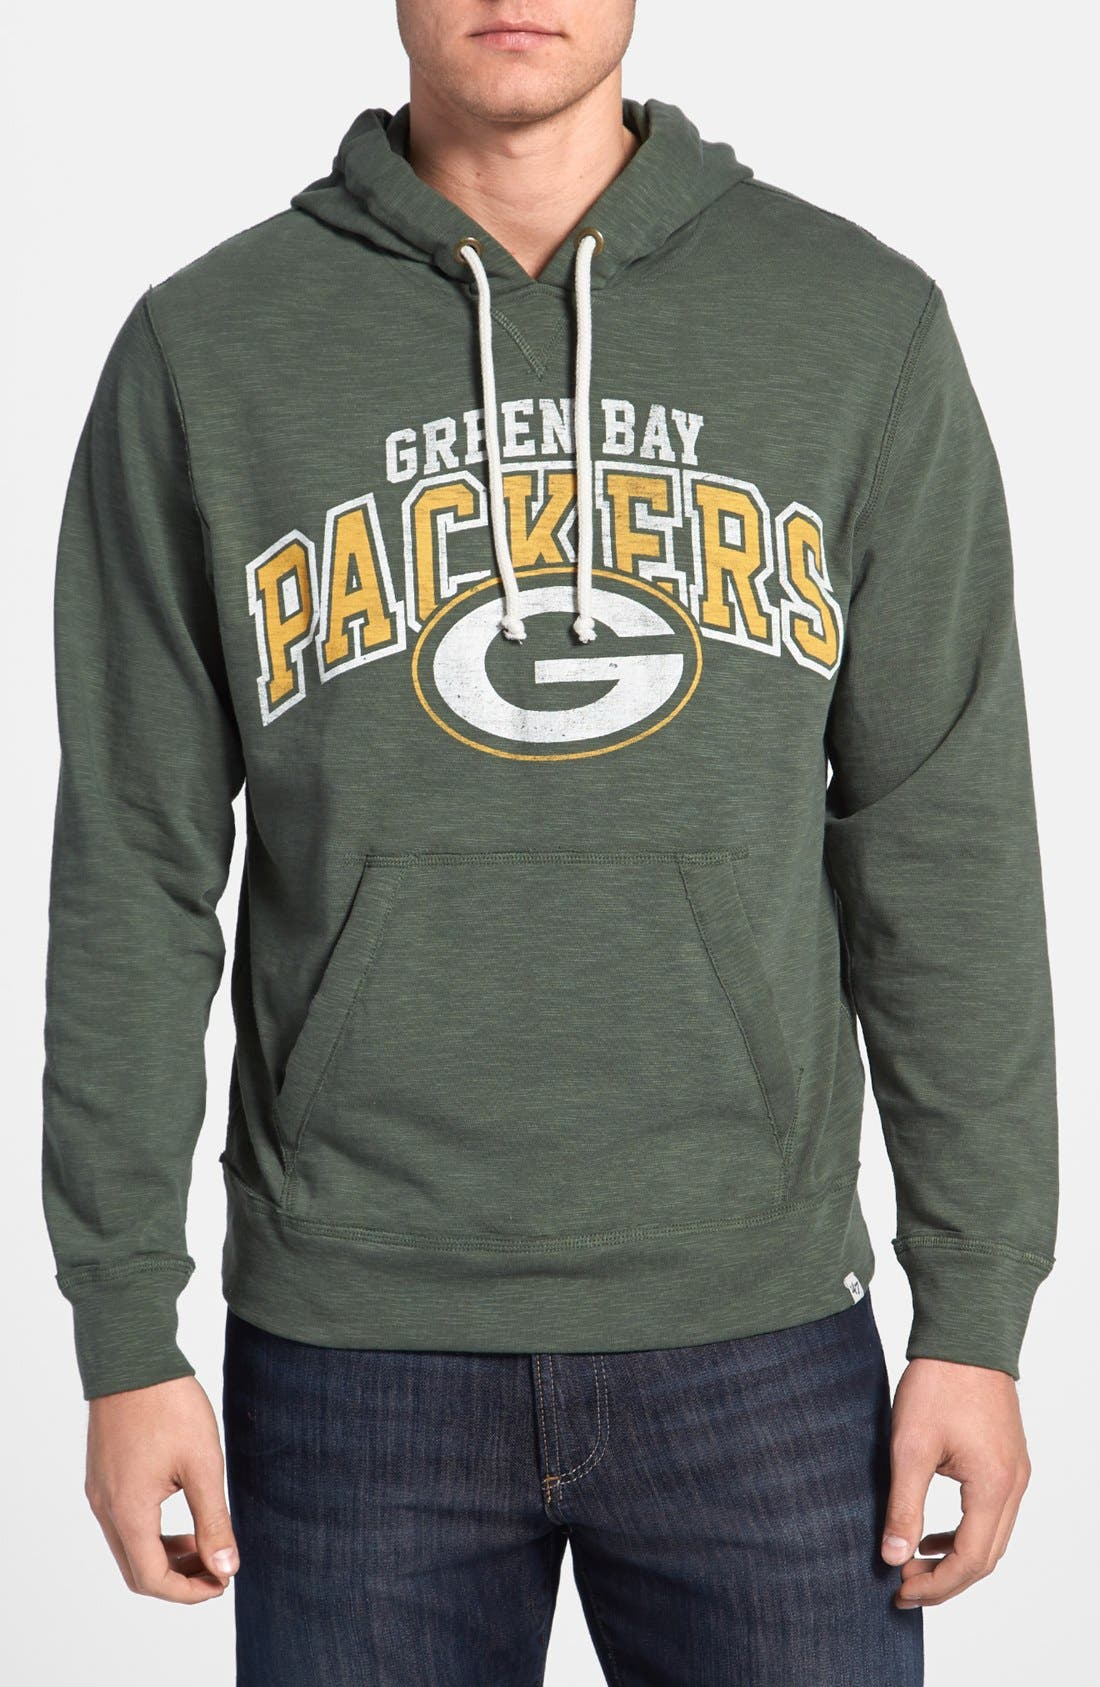 Alternate Image 1 Selected - '47 'Slugger - Green Bay Packets' Hoodie